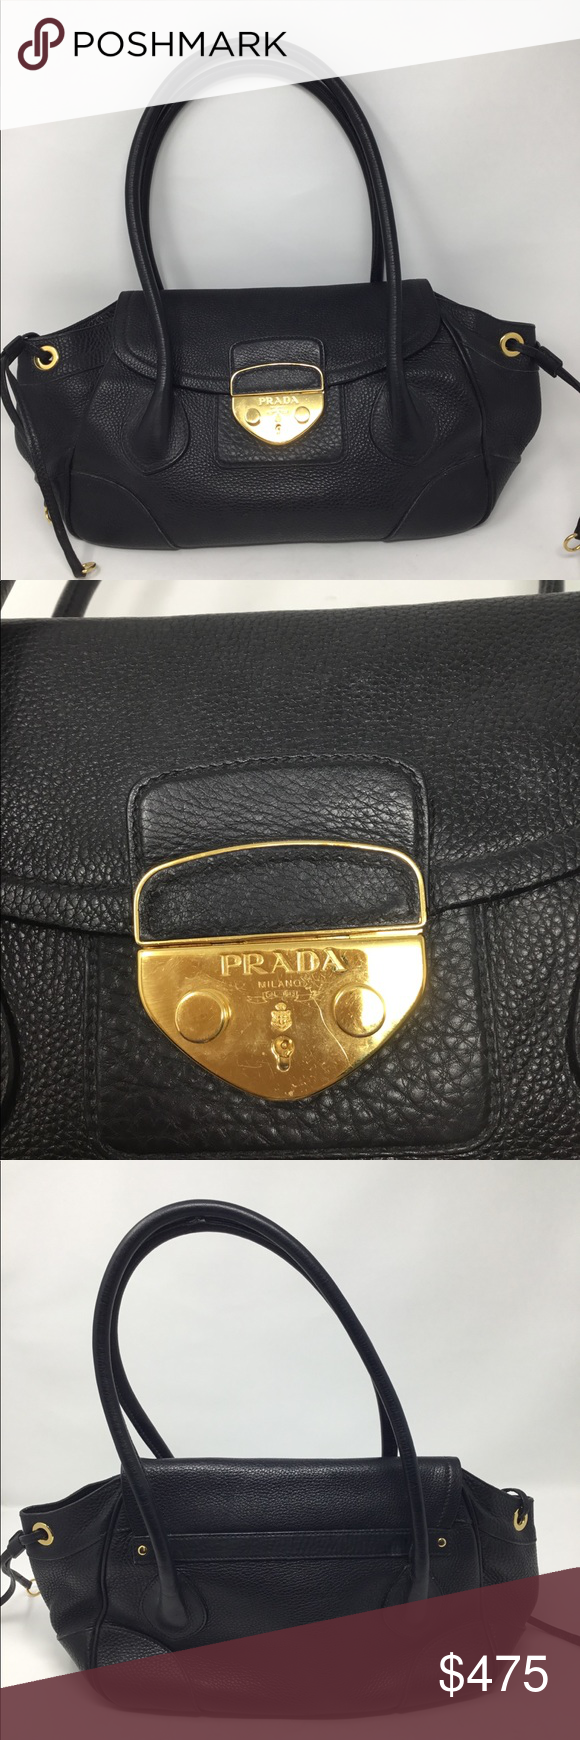 52637aec94 PRADA PEBBLED LEATHER FLAP BAG Black pebbled leather with gold-tone hardware  2 rolled shoulder